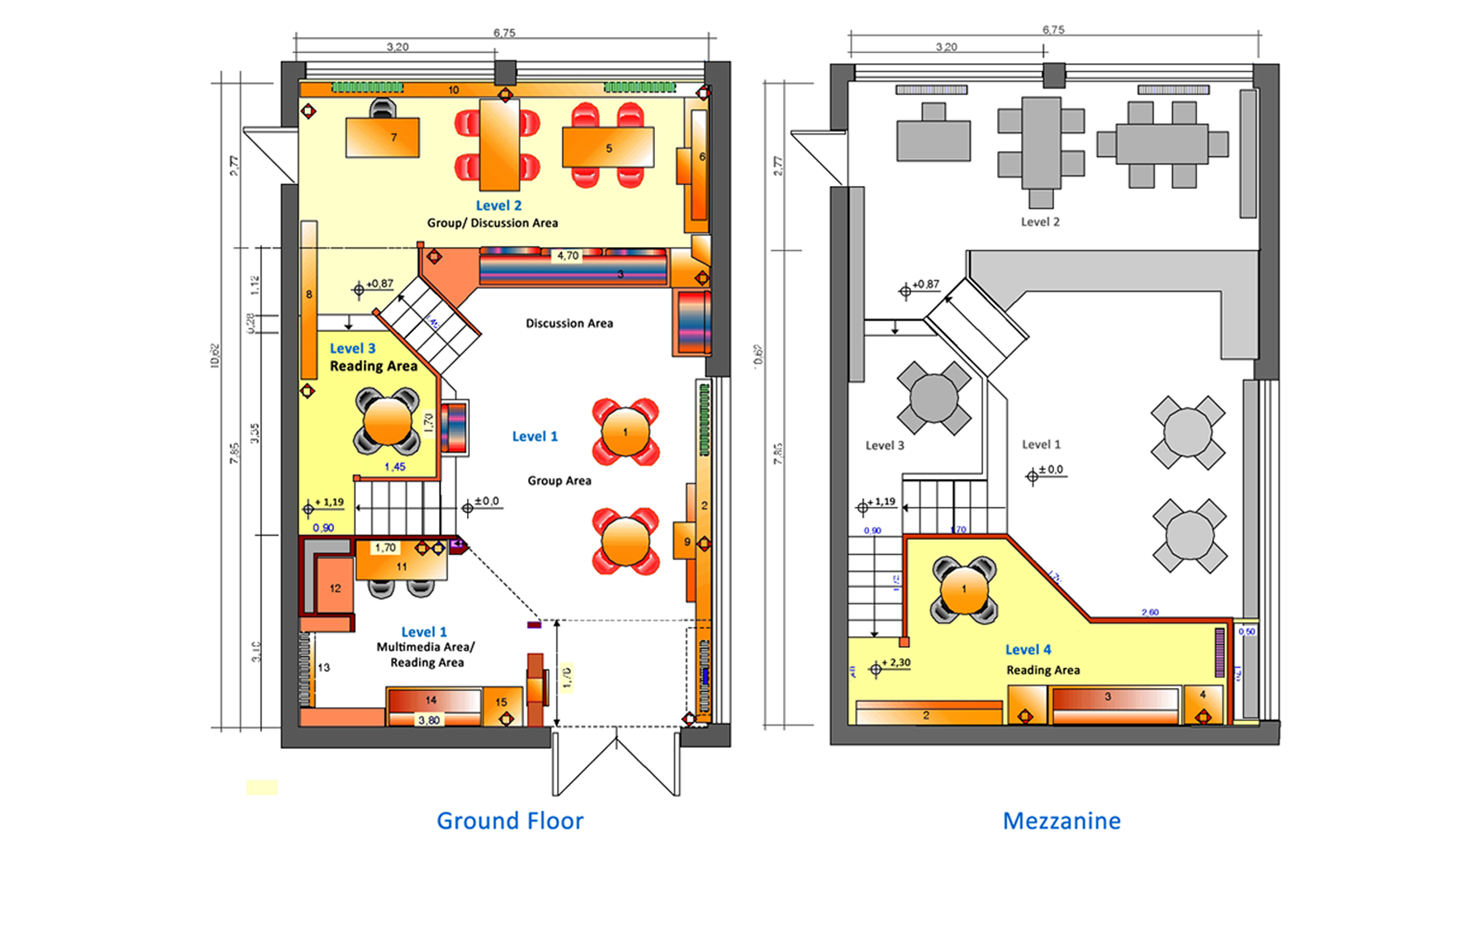 Plan, after redesign. To the left: Ground floor (levels 1-3); to the right: Mezzanine (level 4).